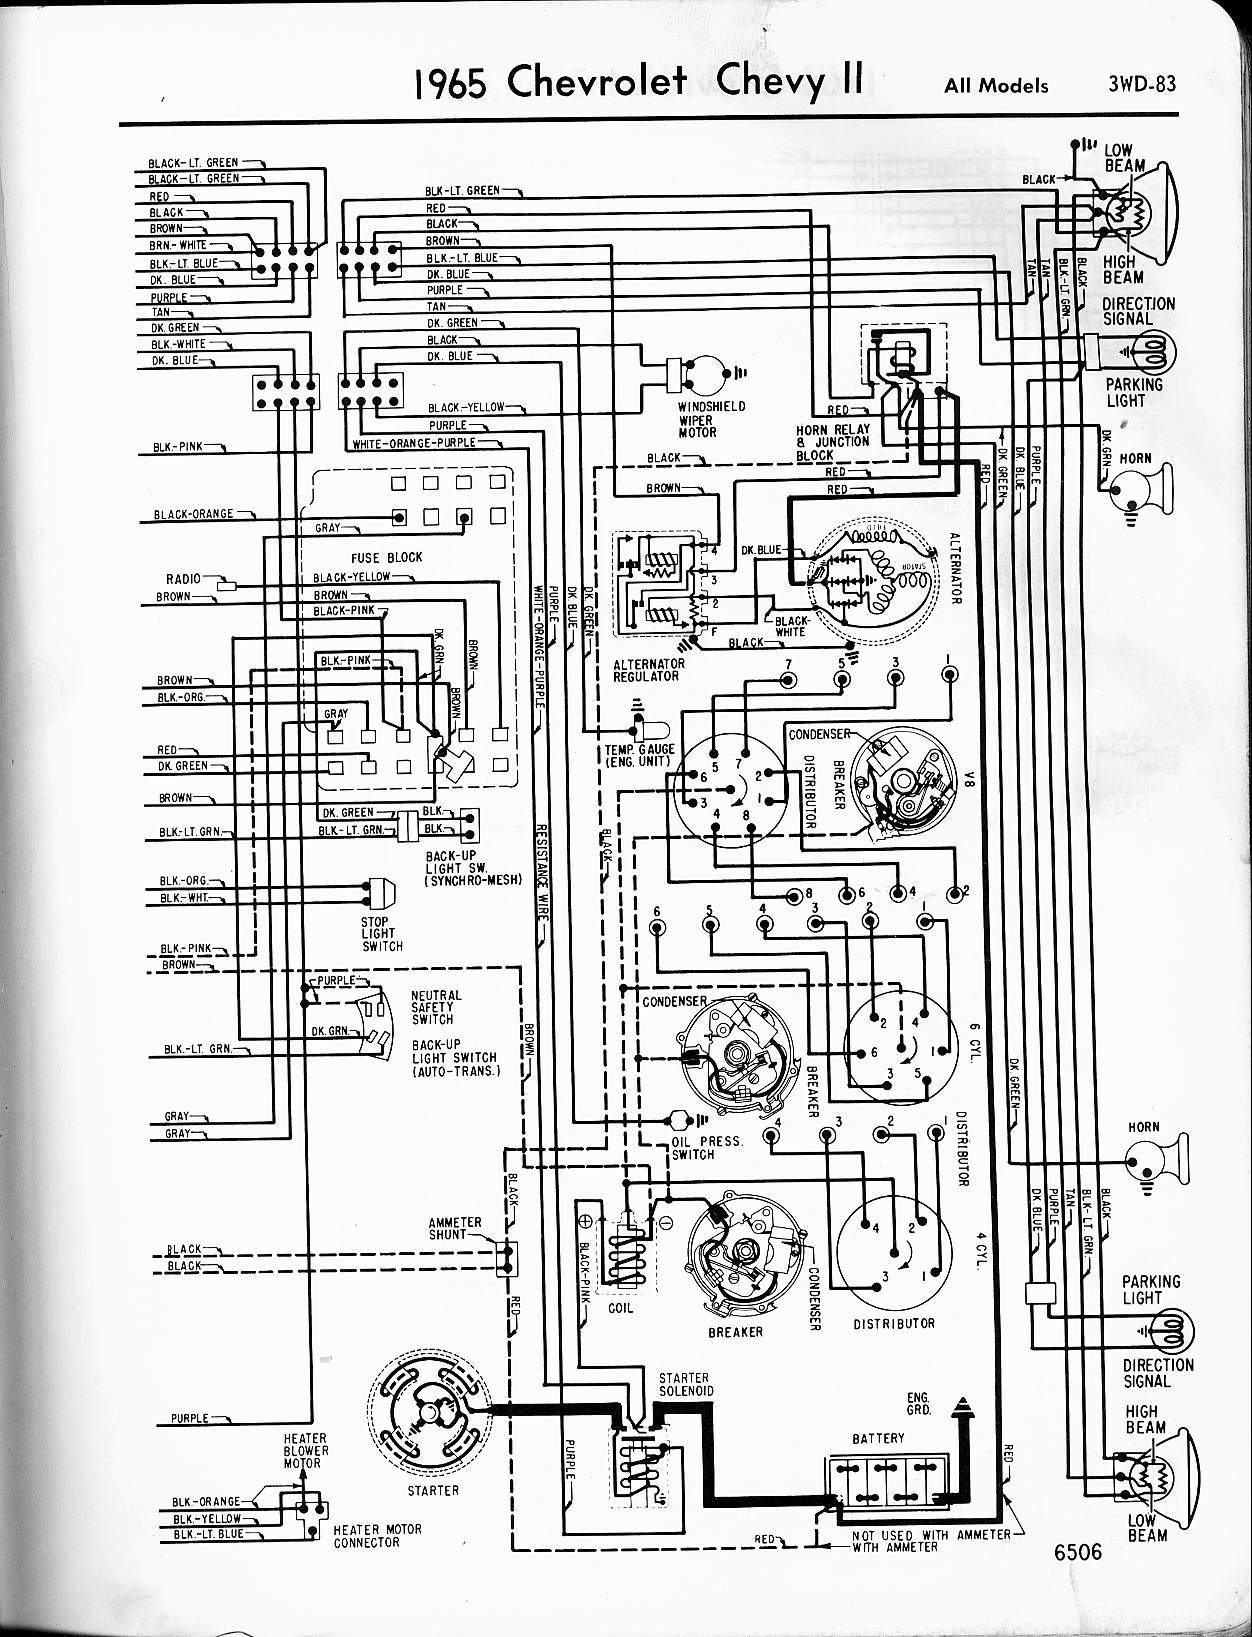 hight resolution of 1968 nova headlight wiring diagram free picture wiring diagram 1977 camaro wiring diagram 1968 nova headlight wiring diagram free picture